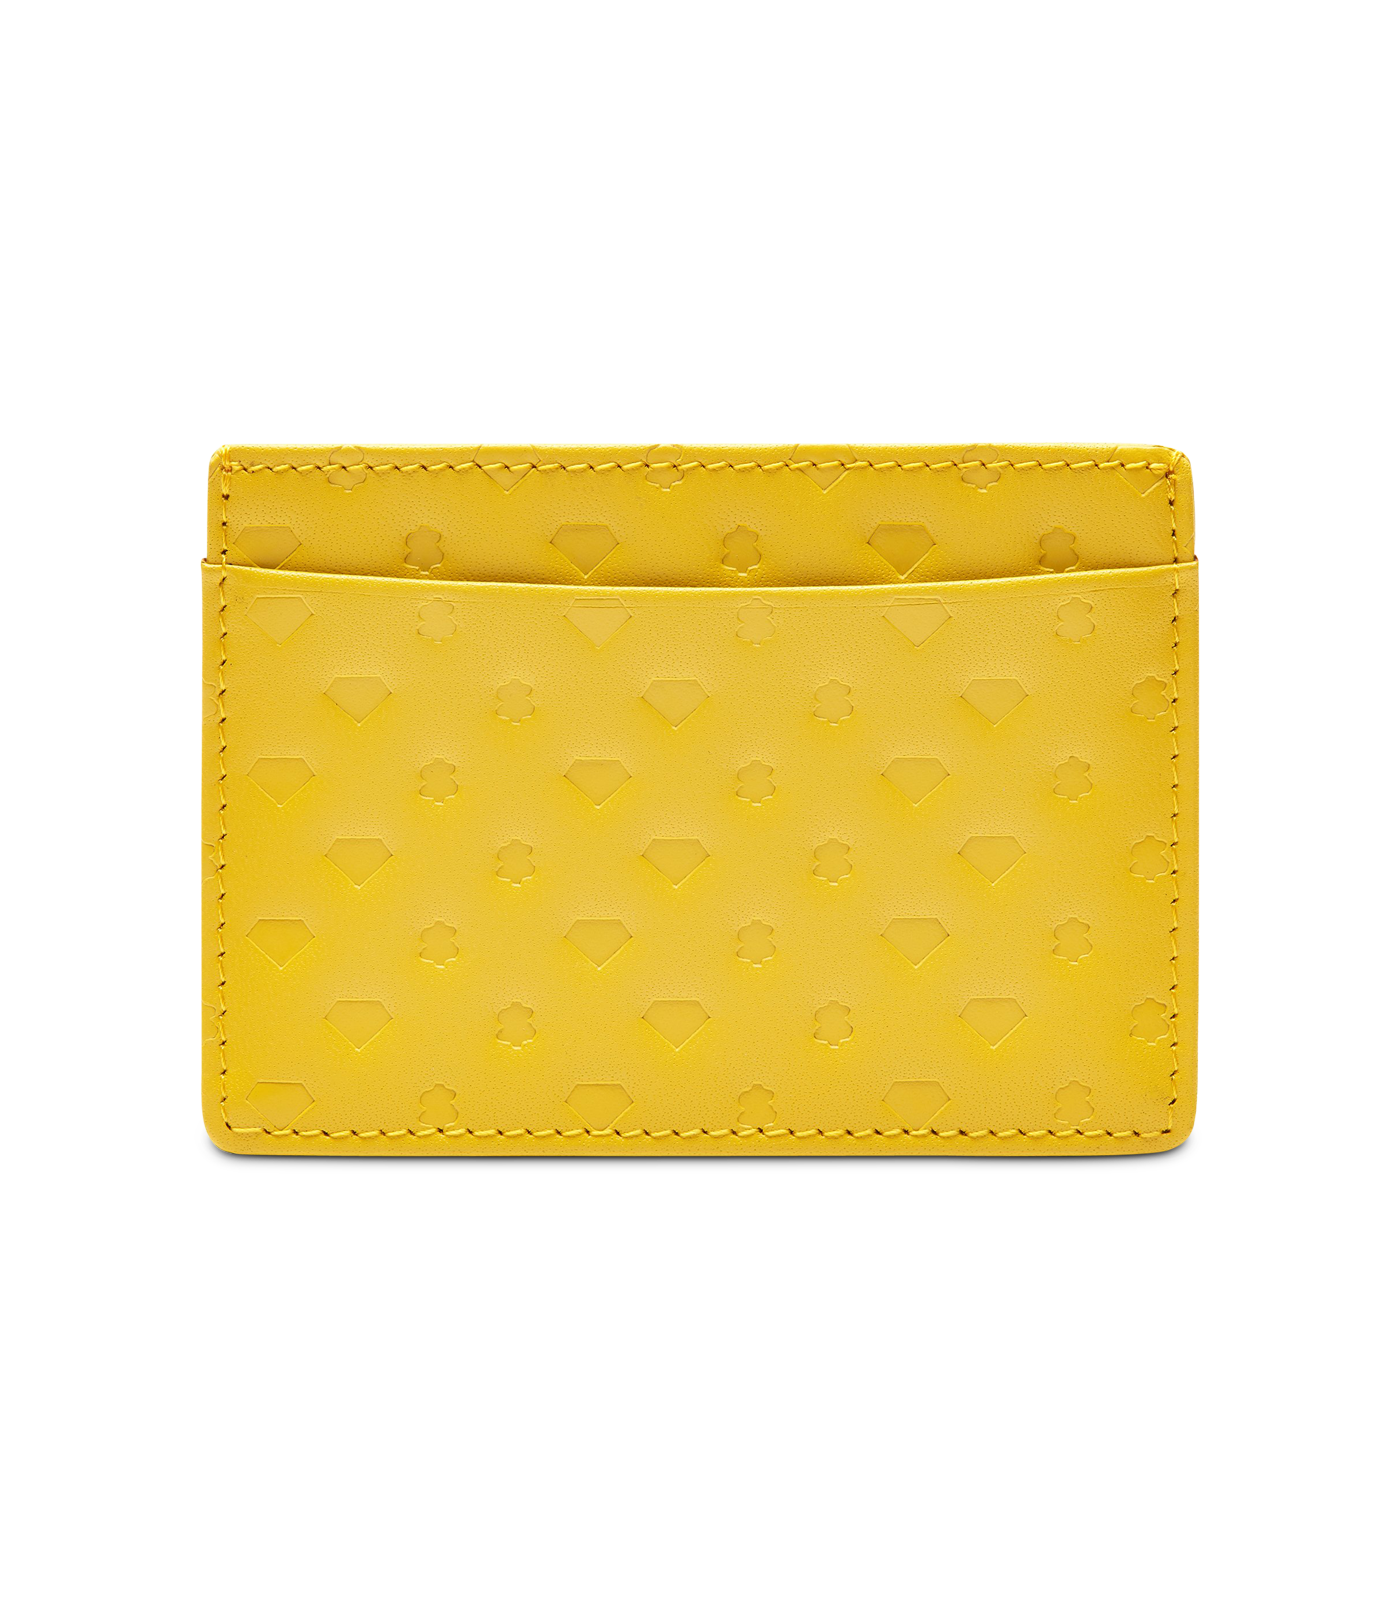 DIAMONDS AND DOLLARS LEATHER CARDHOLDER